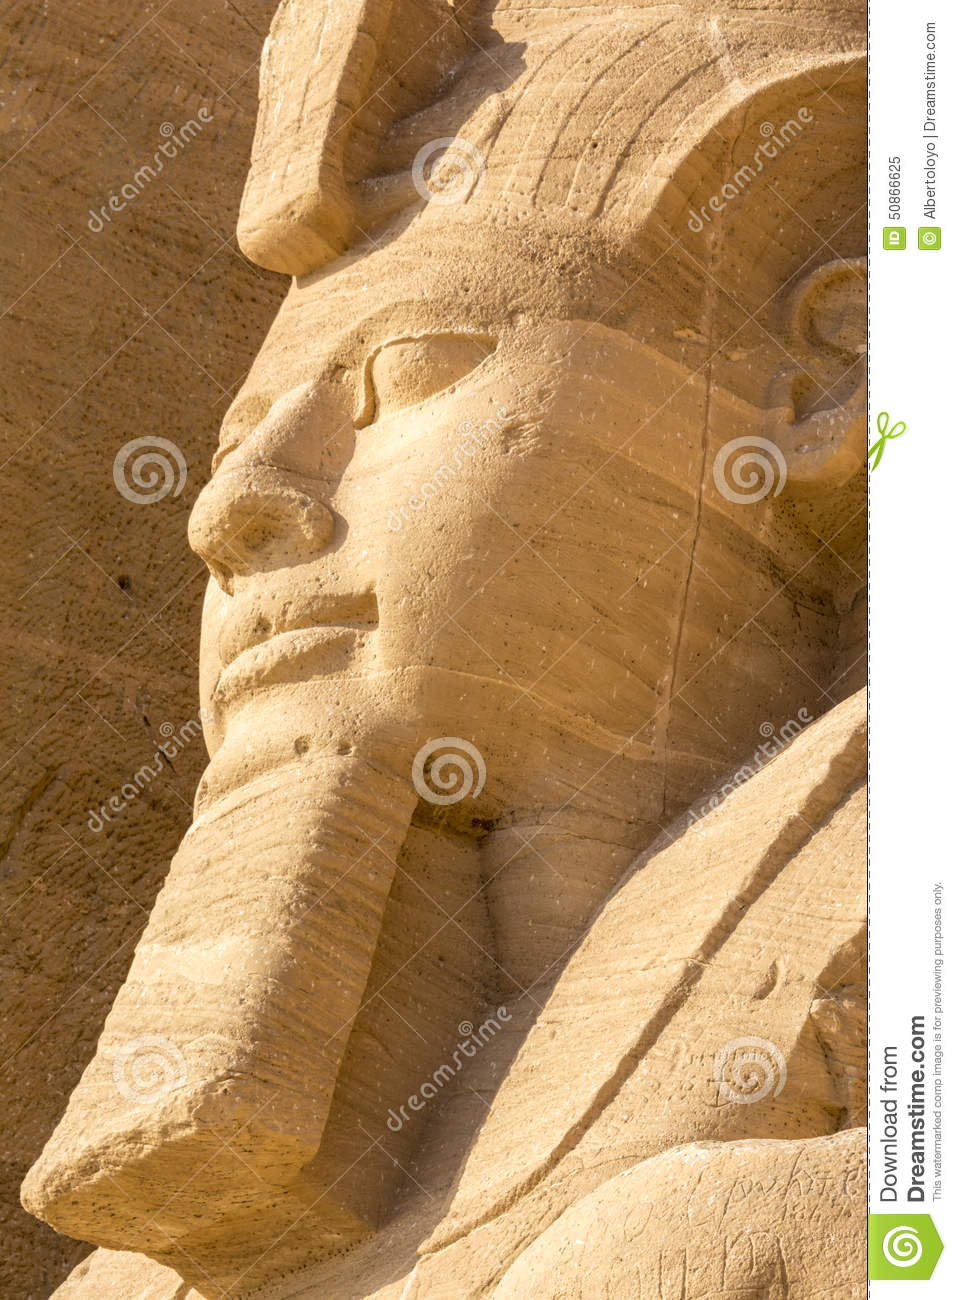 the life and times of ramses the great Ramses accomlished many things in his life time that he took pride and one of them is his victory in the battle of kadesh he engaged in numerous wars and battles to reconquer the lost territories of egypt but his most famous battle is the battle of kadesh.